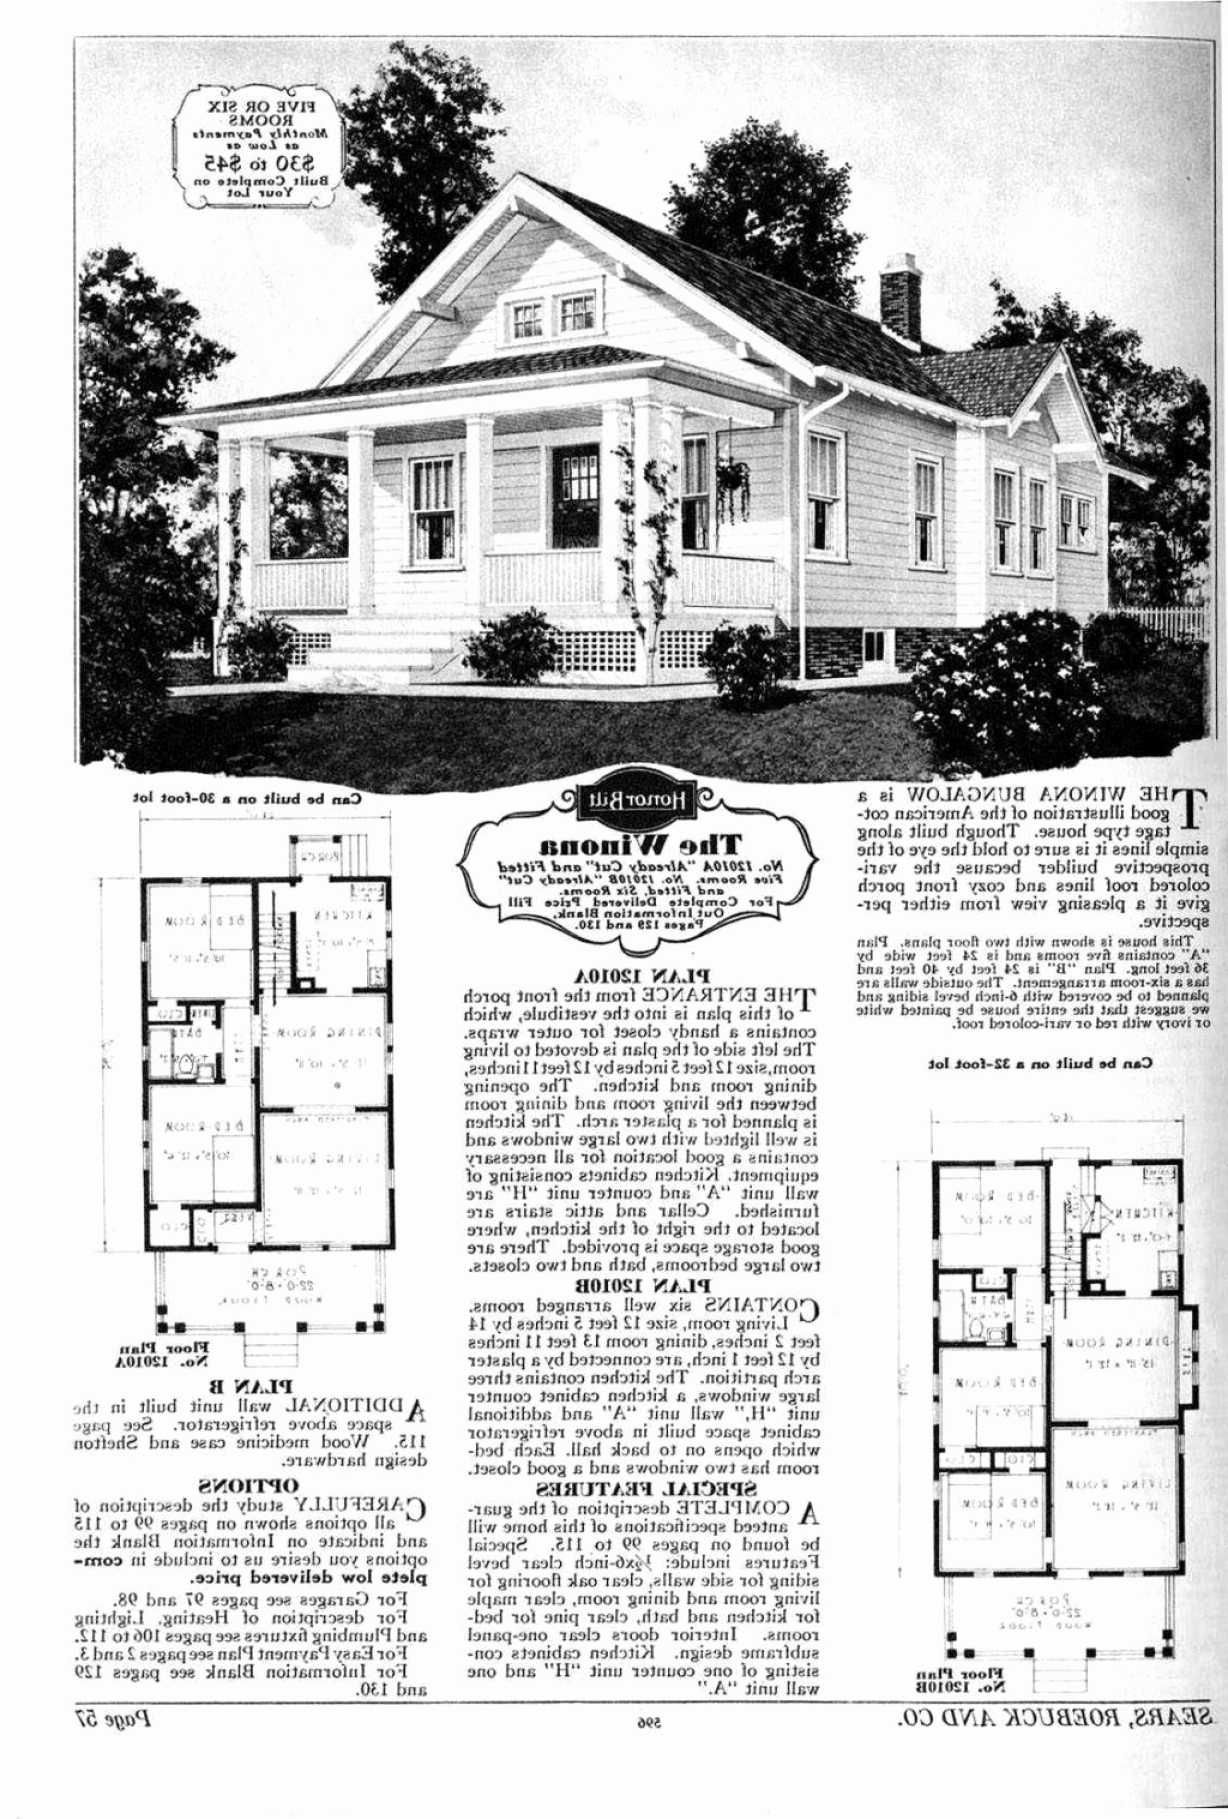 Gray Craftsman House Inspirational Gray Craftsman House Farm Style House Plans Luxury Coun Bungalow Floor Plans Craftsman House Plans Victorian House Plans